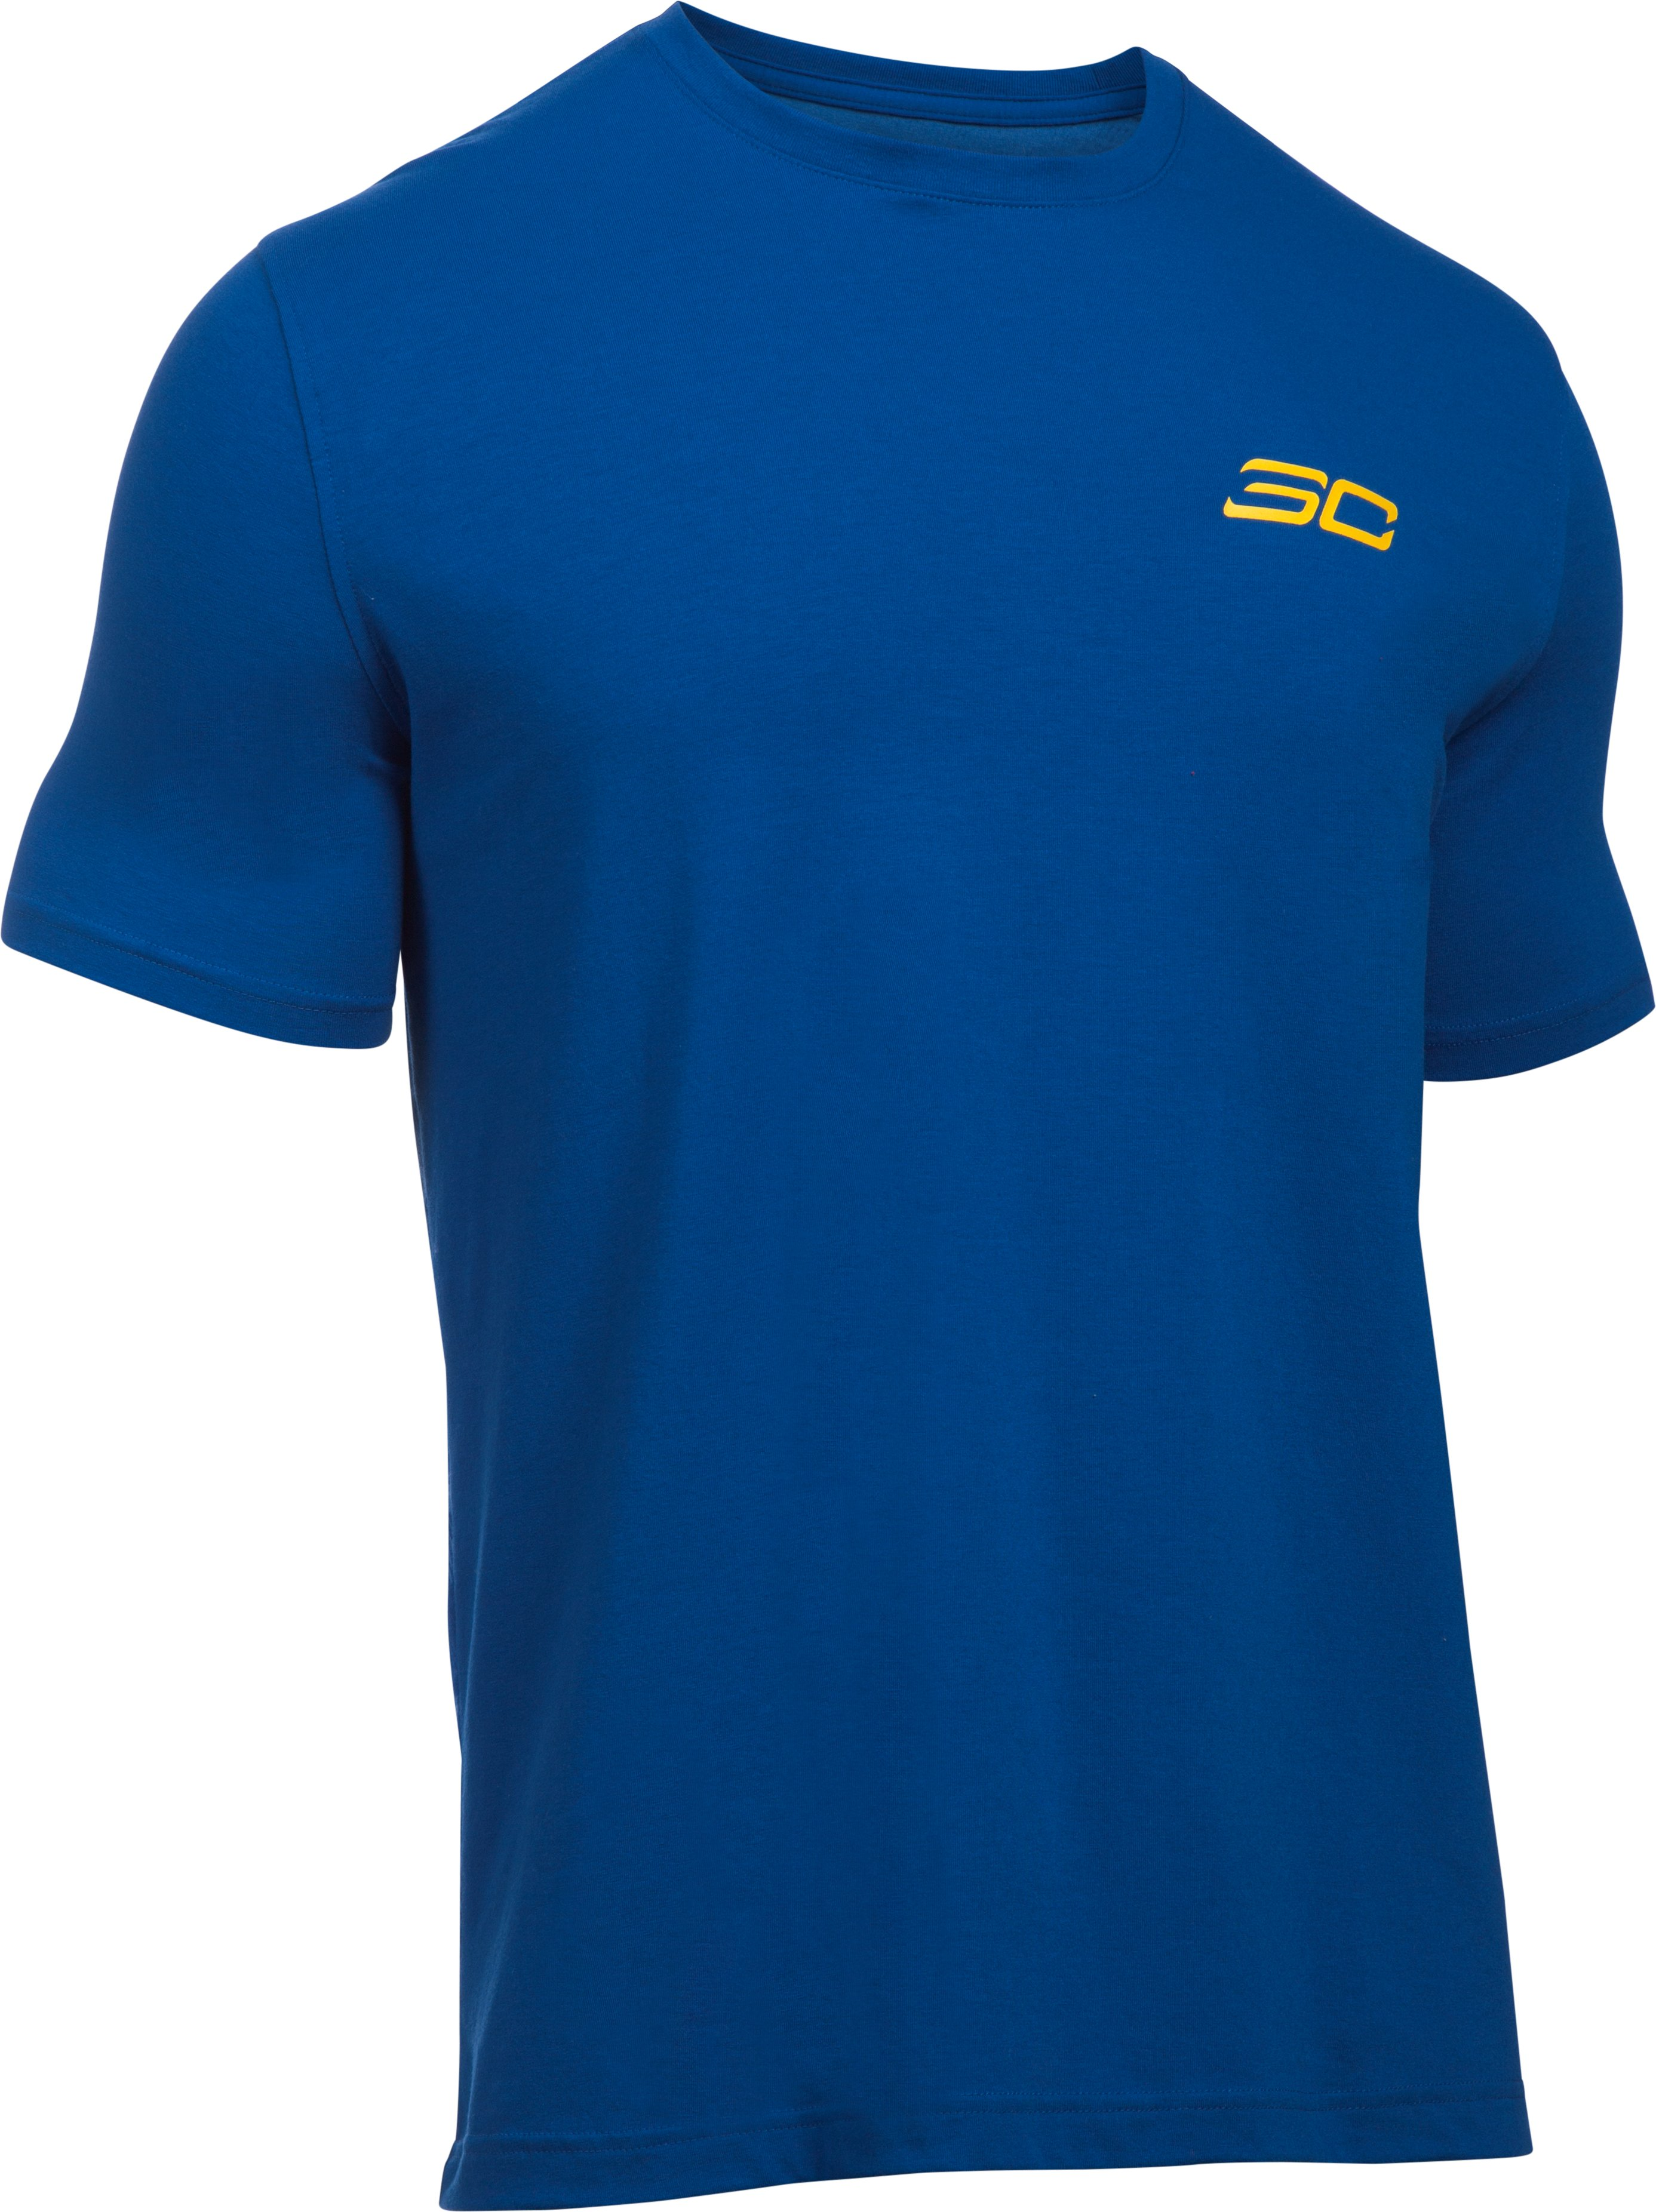 Men's SC30 Blessed with Game T-Shirt, Royal